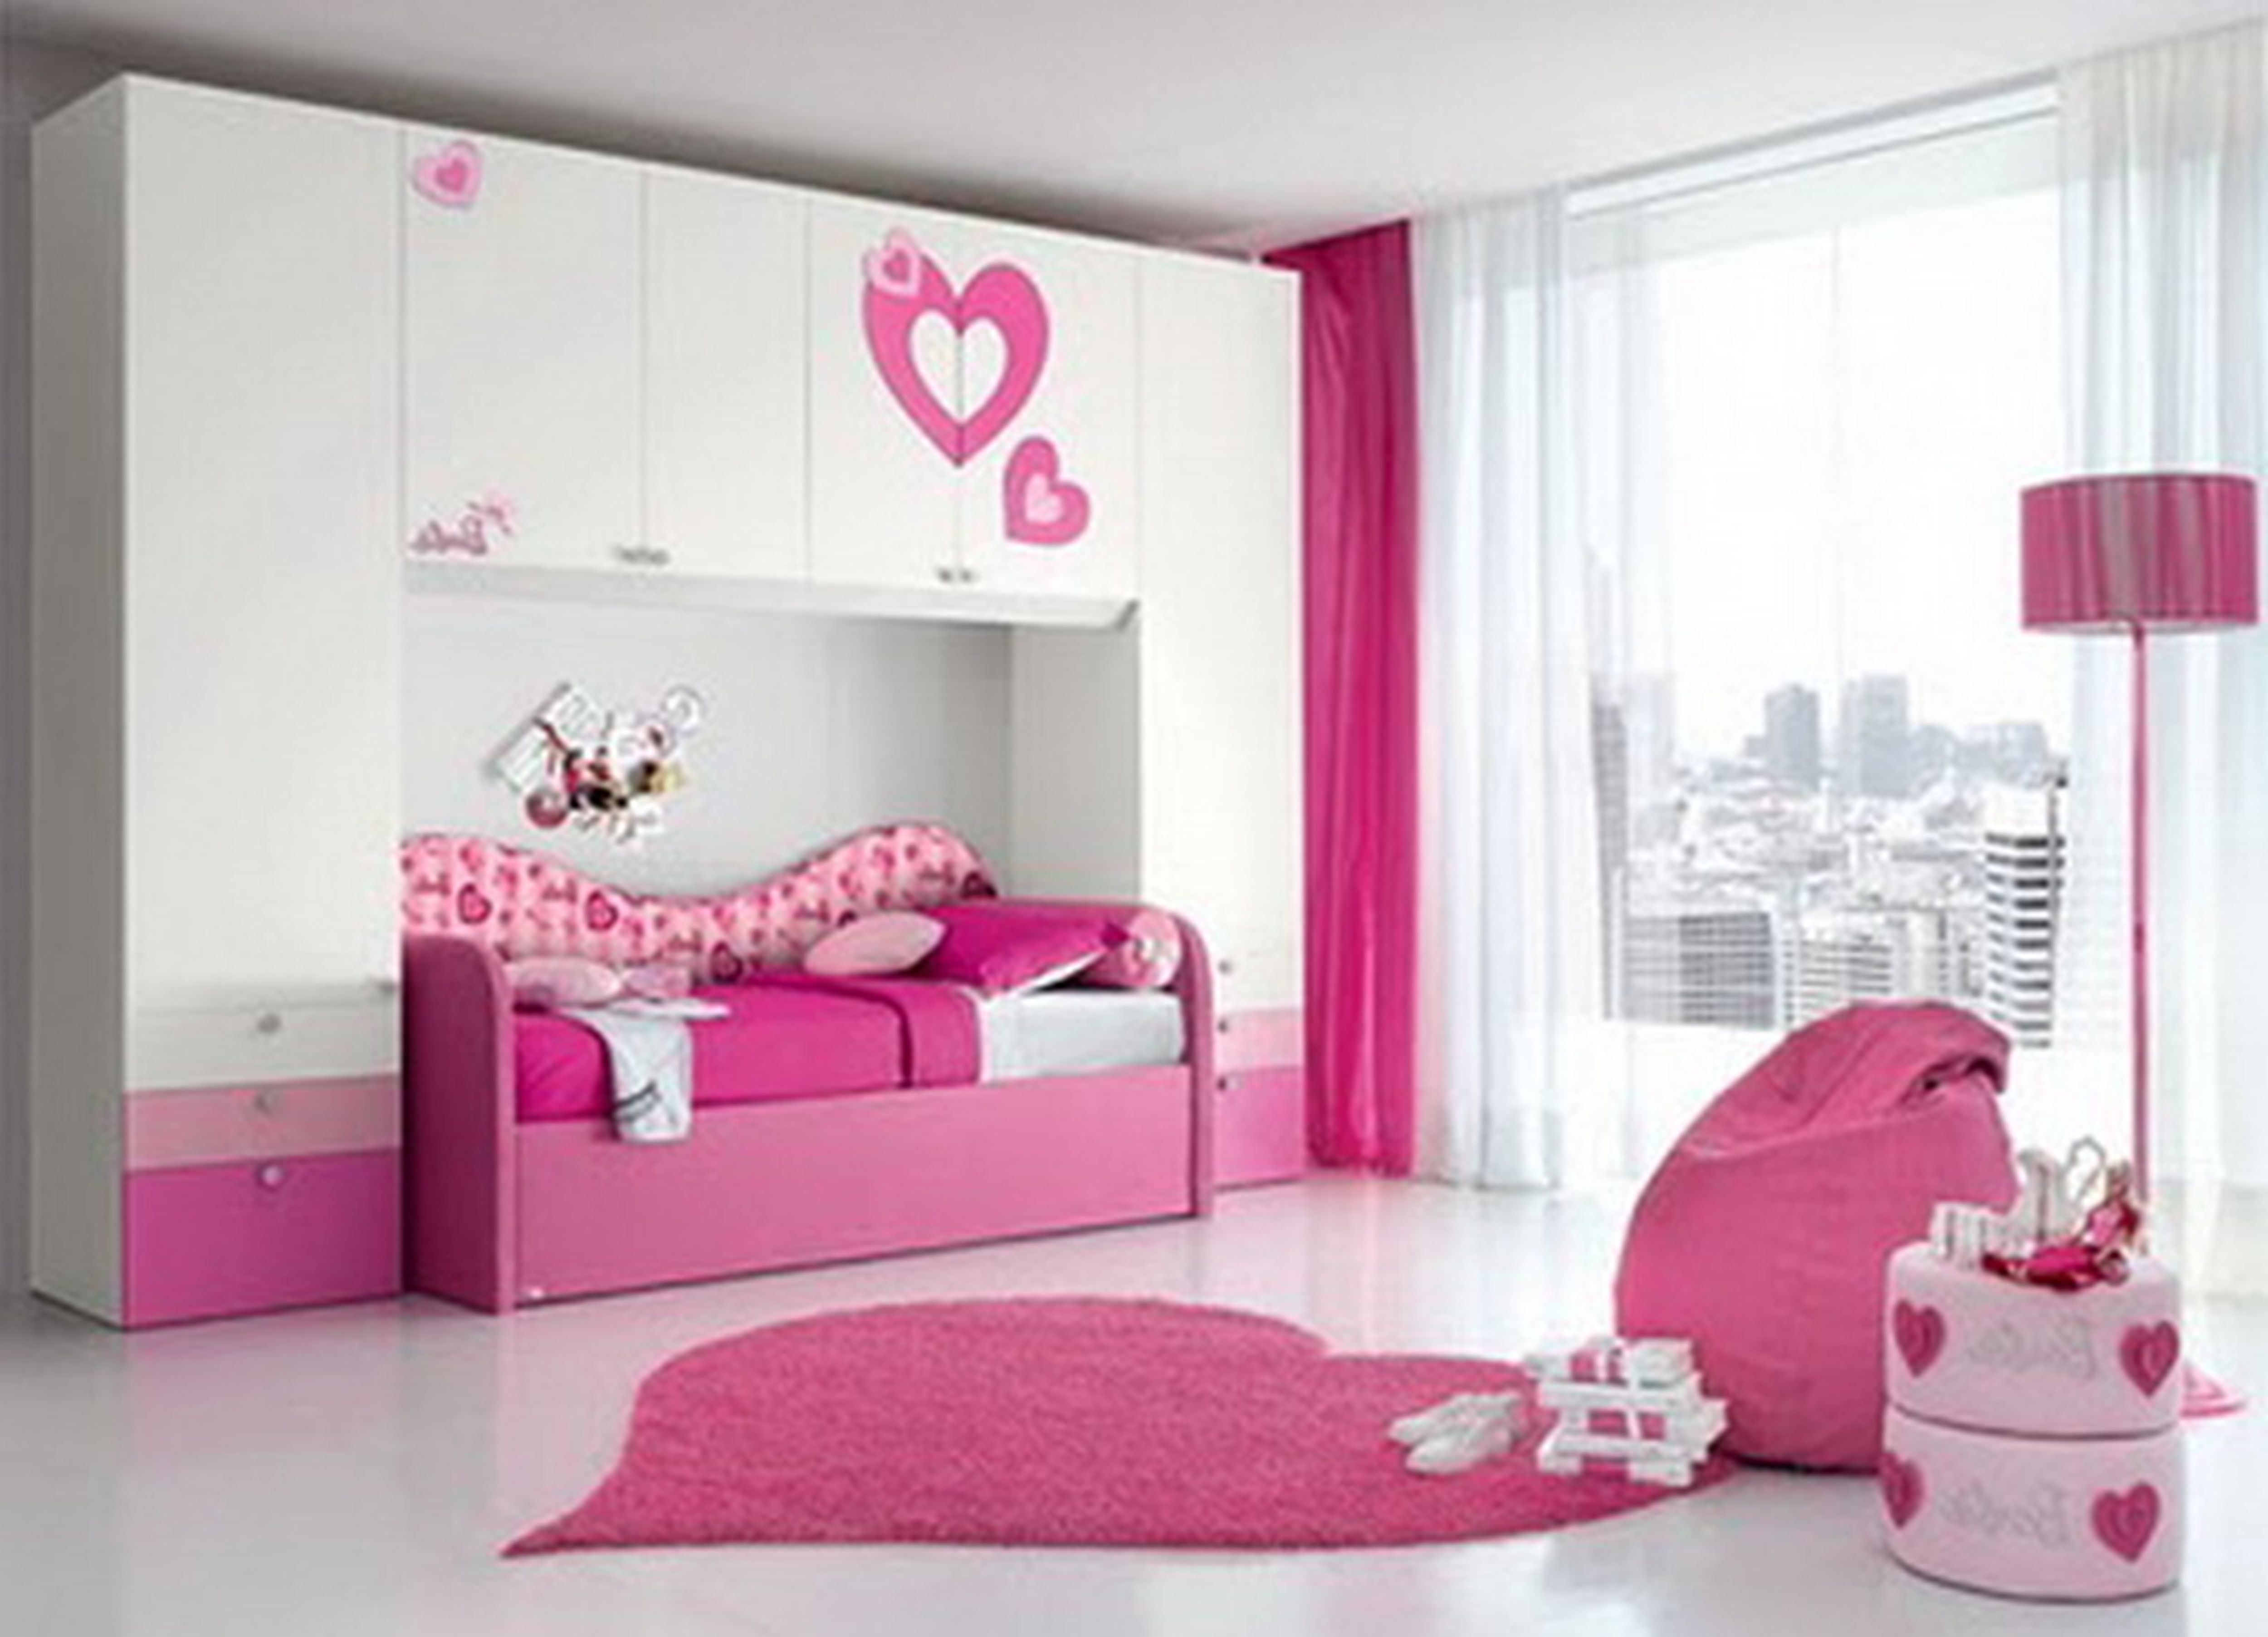 Lovely Teen Girls Bedroom Designs With Pink And White Ikea Bedroom  Furnishing Themes In Open Views Modern Room Decors Part 63